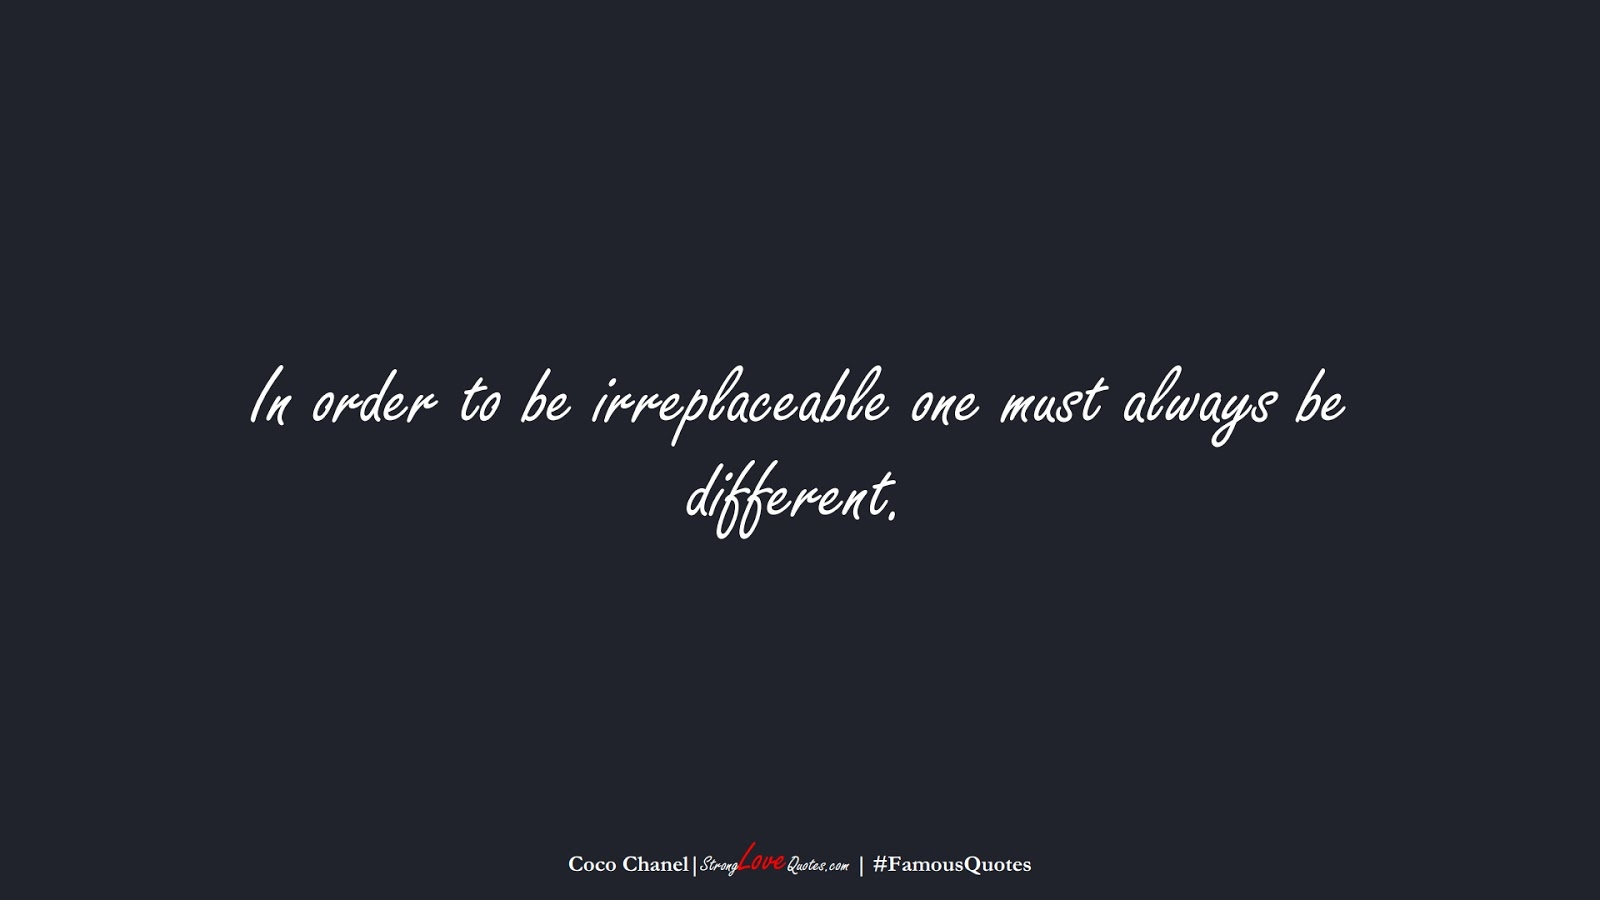 In order to be irreplaceable one must always be different. (Coco Chanel);  #FamousQuotes